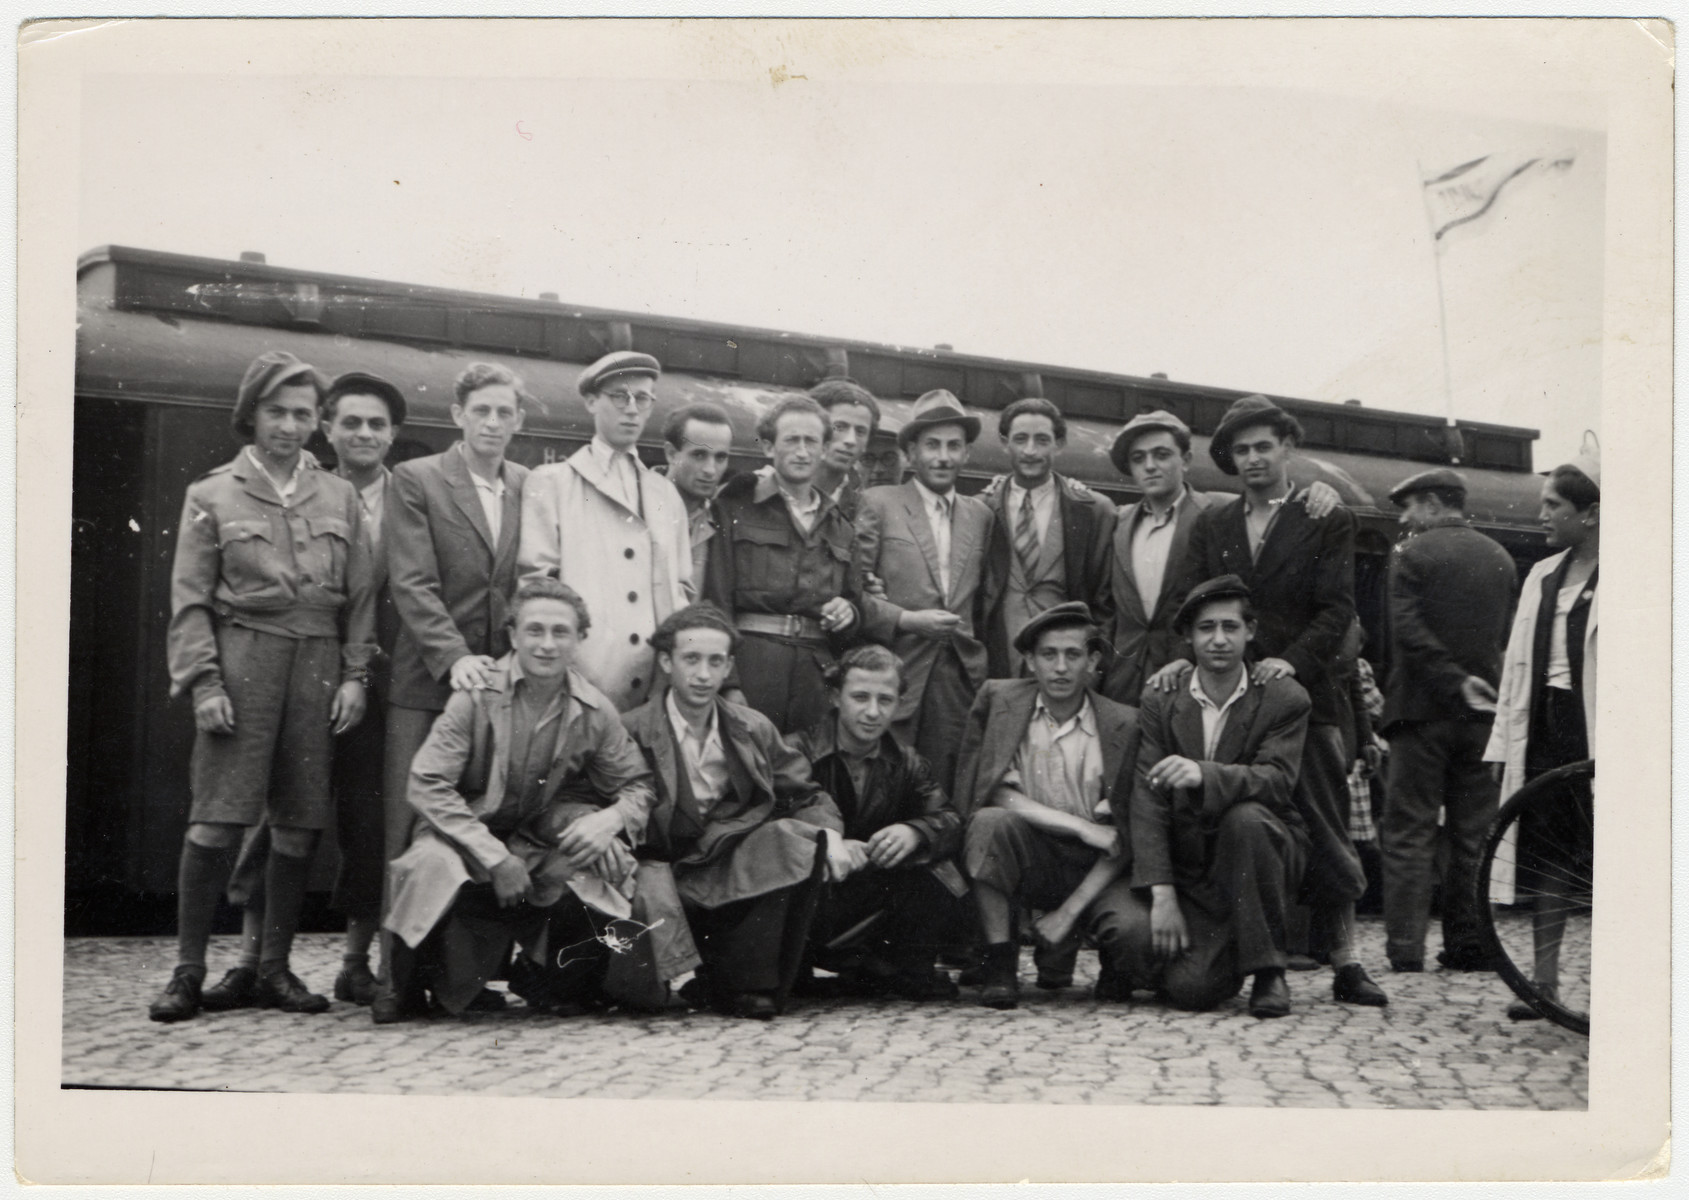 A group of Jewish men from the Bergen-Belsen displaced persons camp pose at the train station.